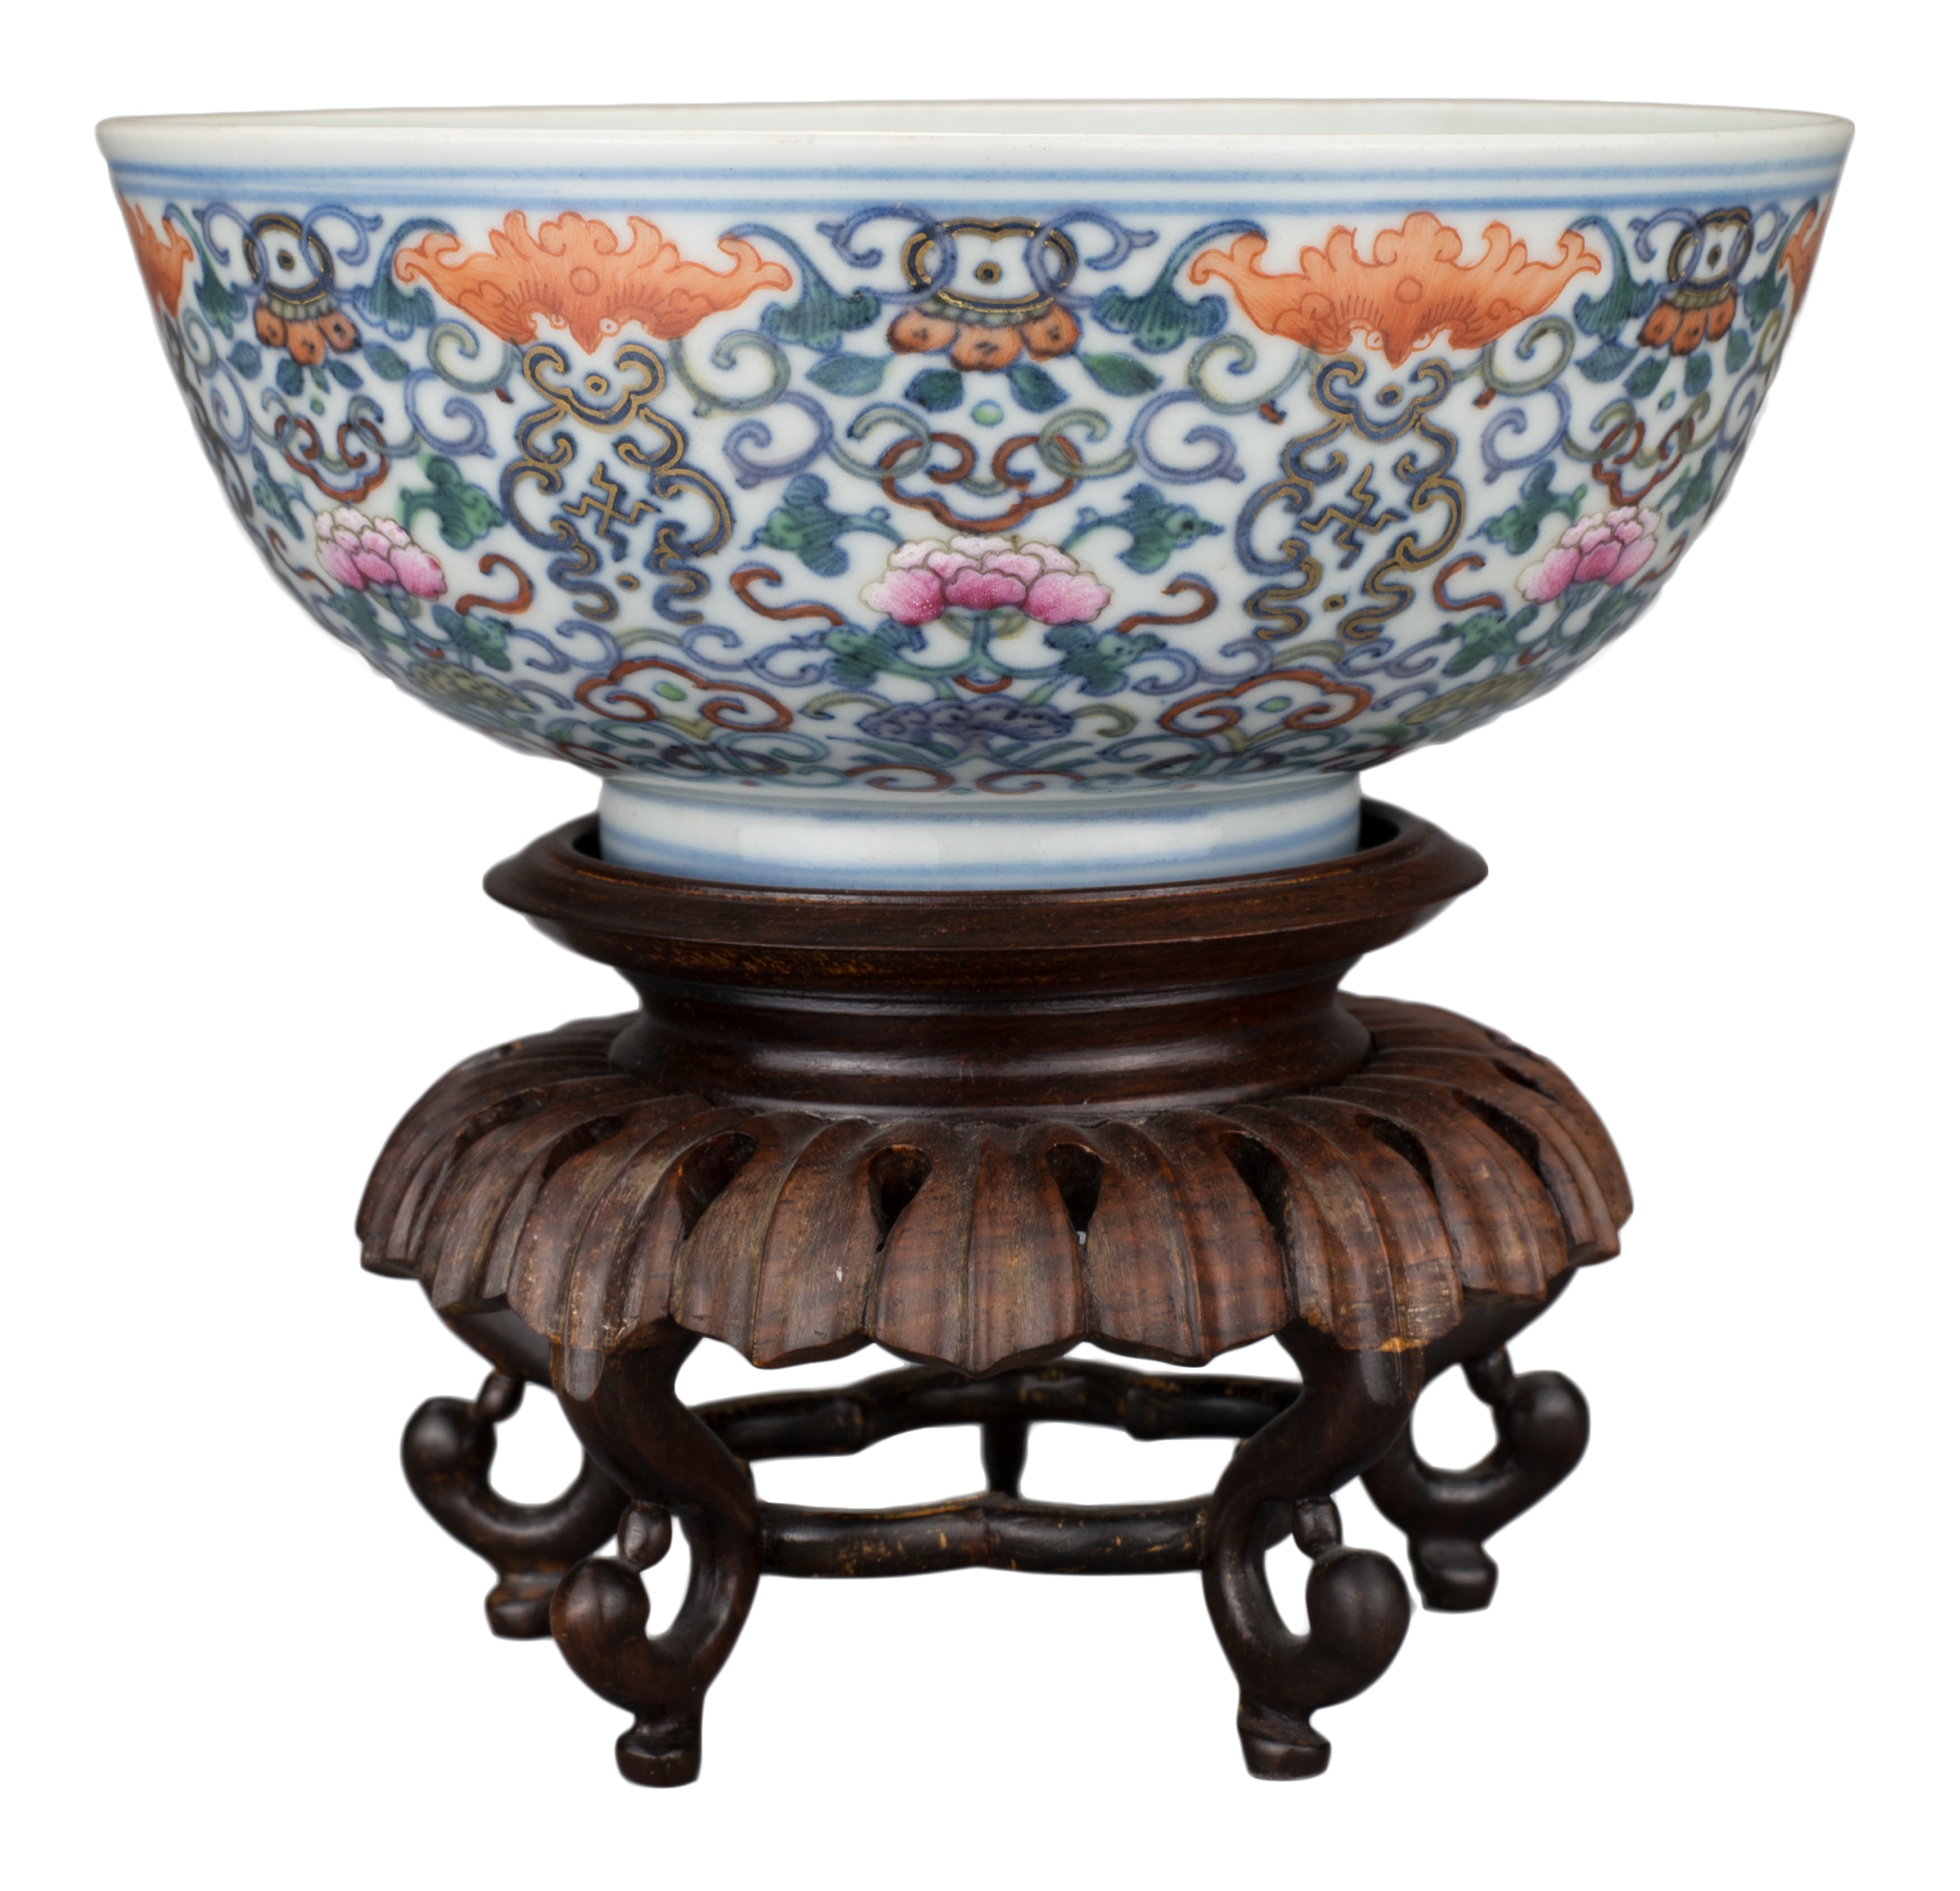 FINE CHINESE DOUCAI PORCELAIN BOWL, JIAQING MARK AND PERIOD, EARLY 19th CENTURY